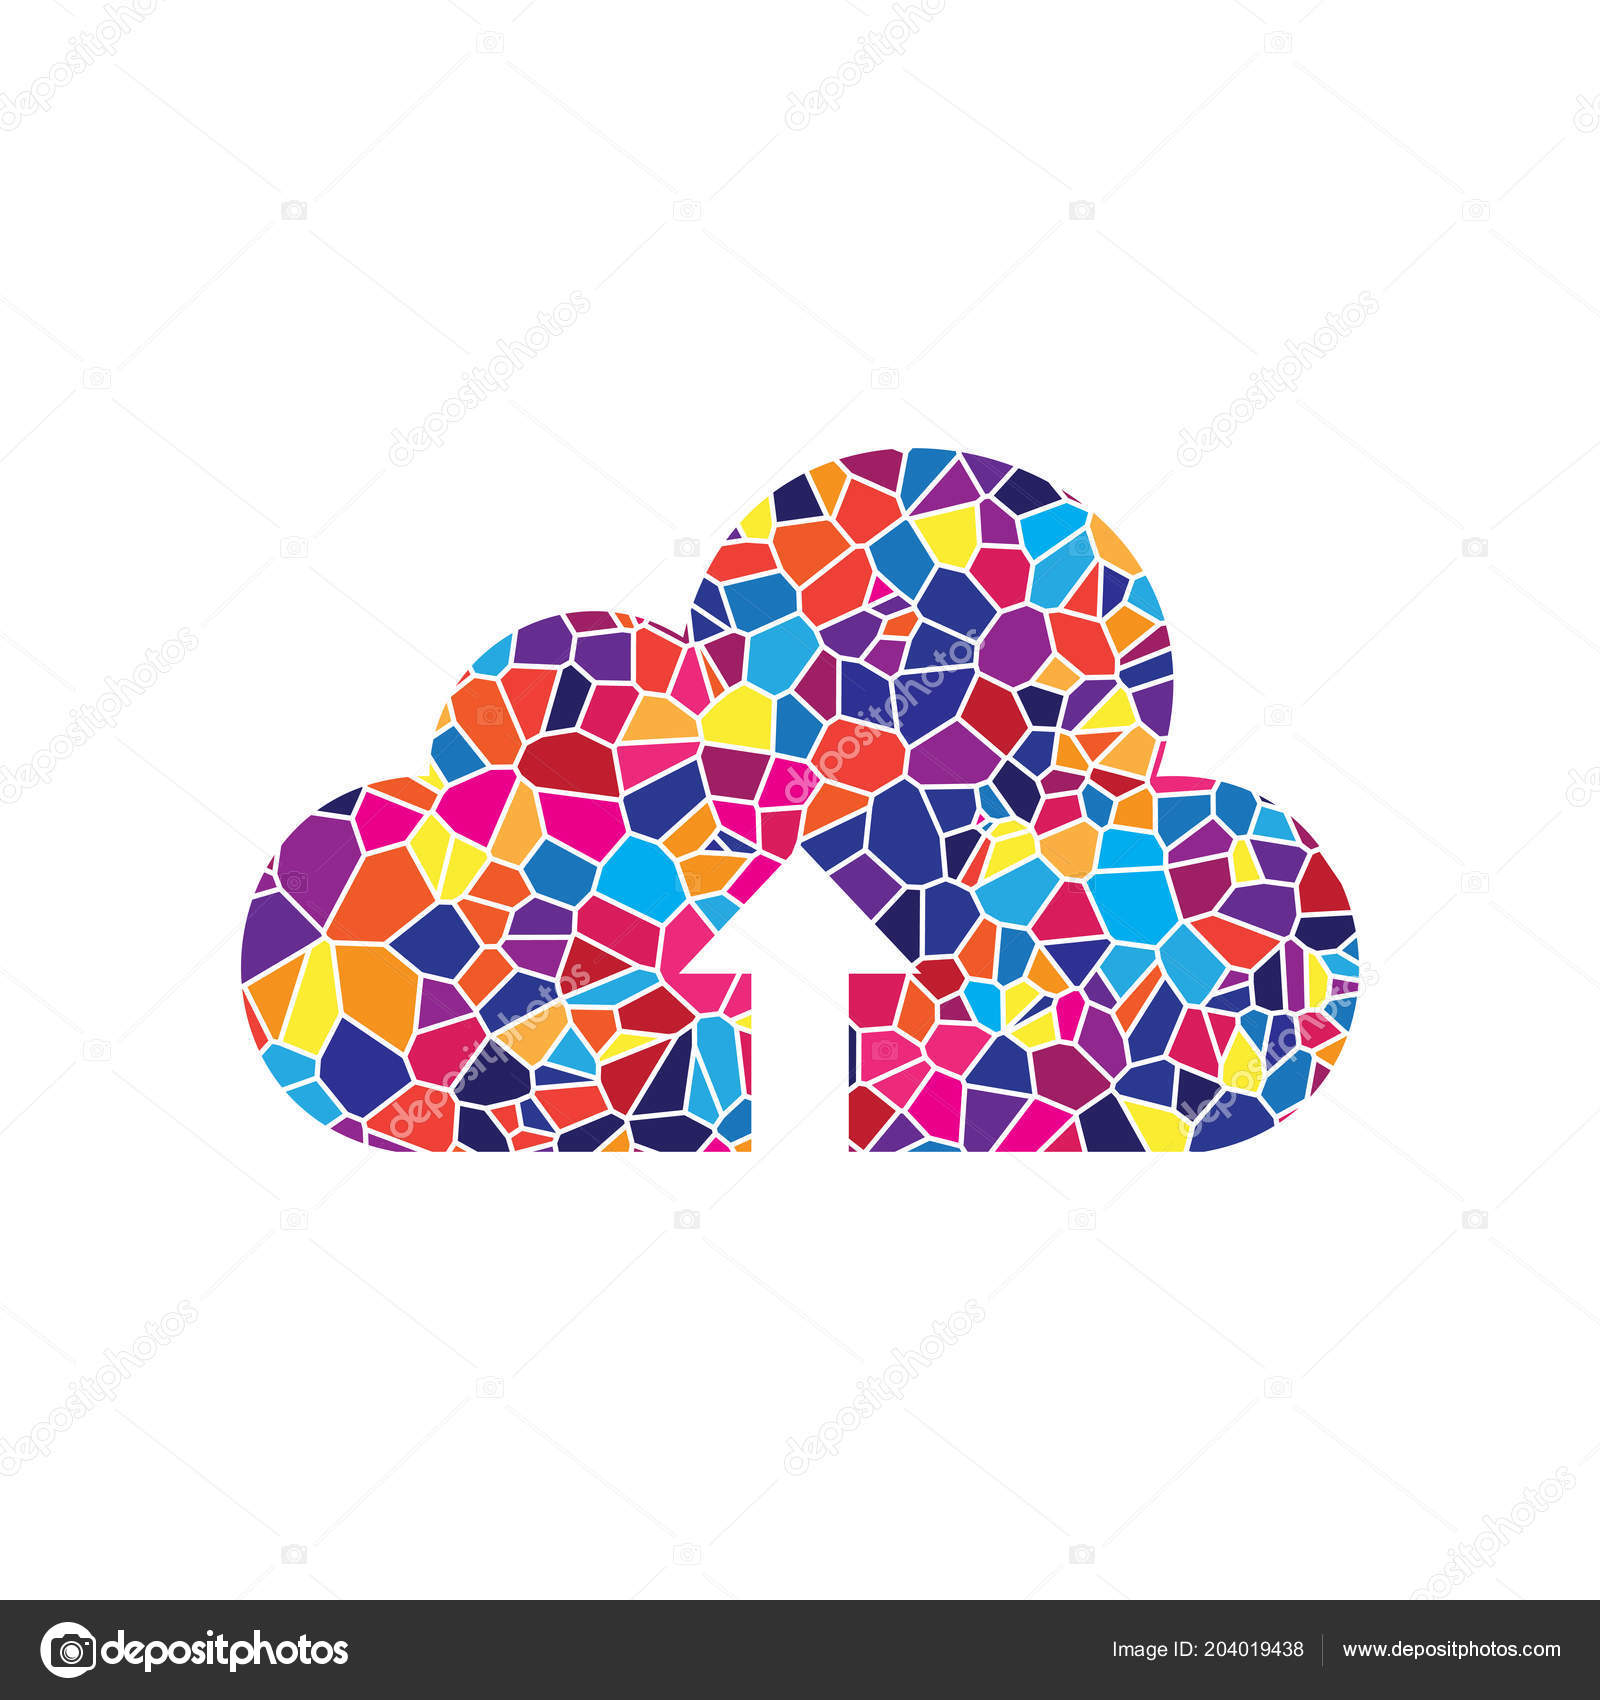 b4ff0a9f6 Cloud technology sign. Vector. Stained glass icon on white backg– stock  illustration